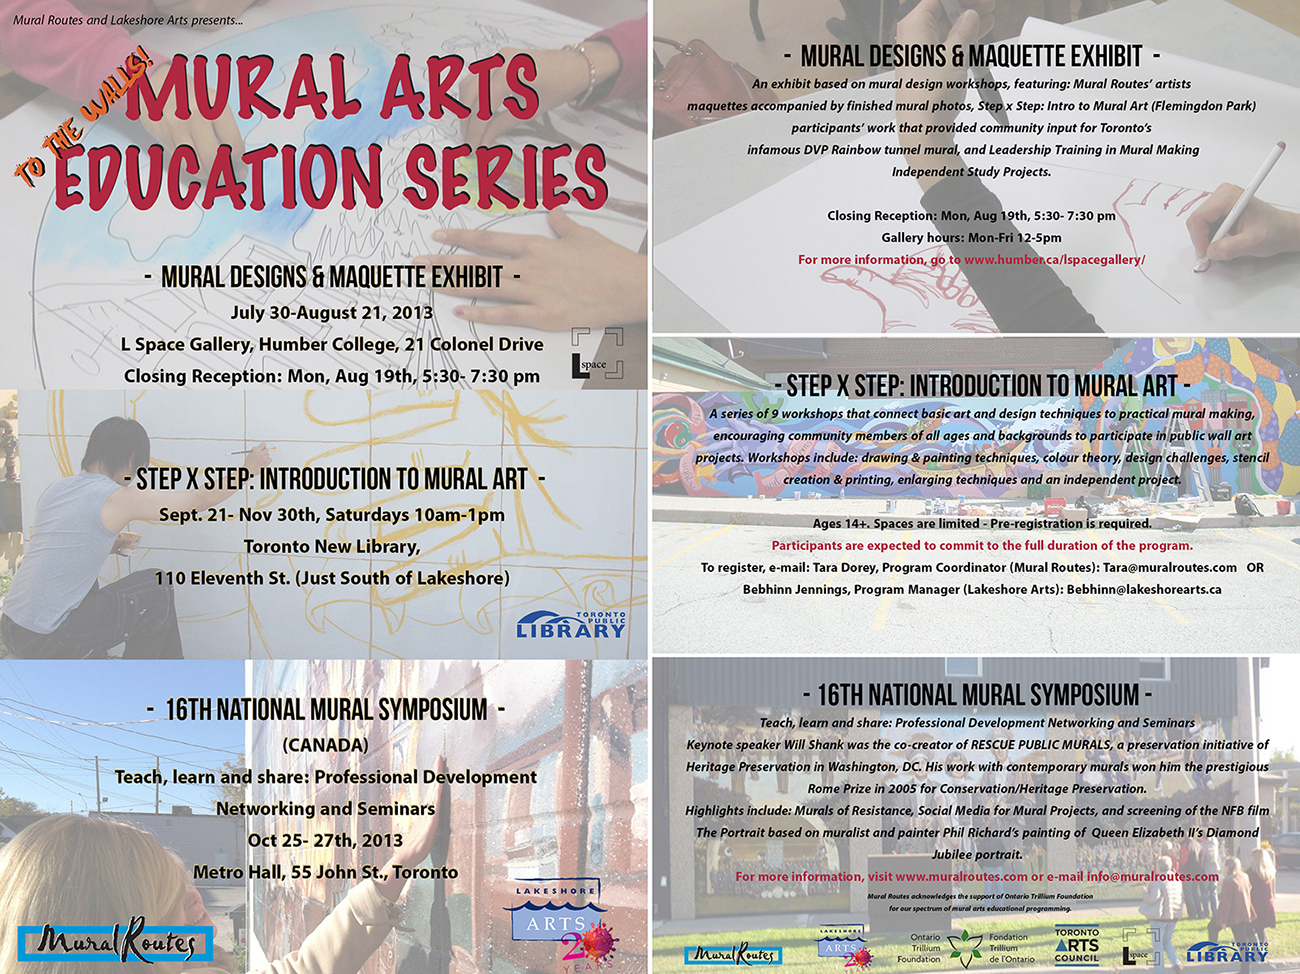 To The Walls! Mural Arts Education Series